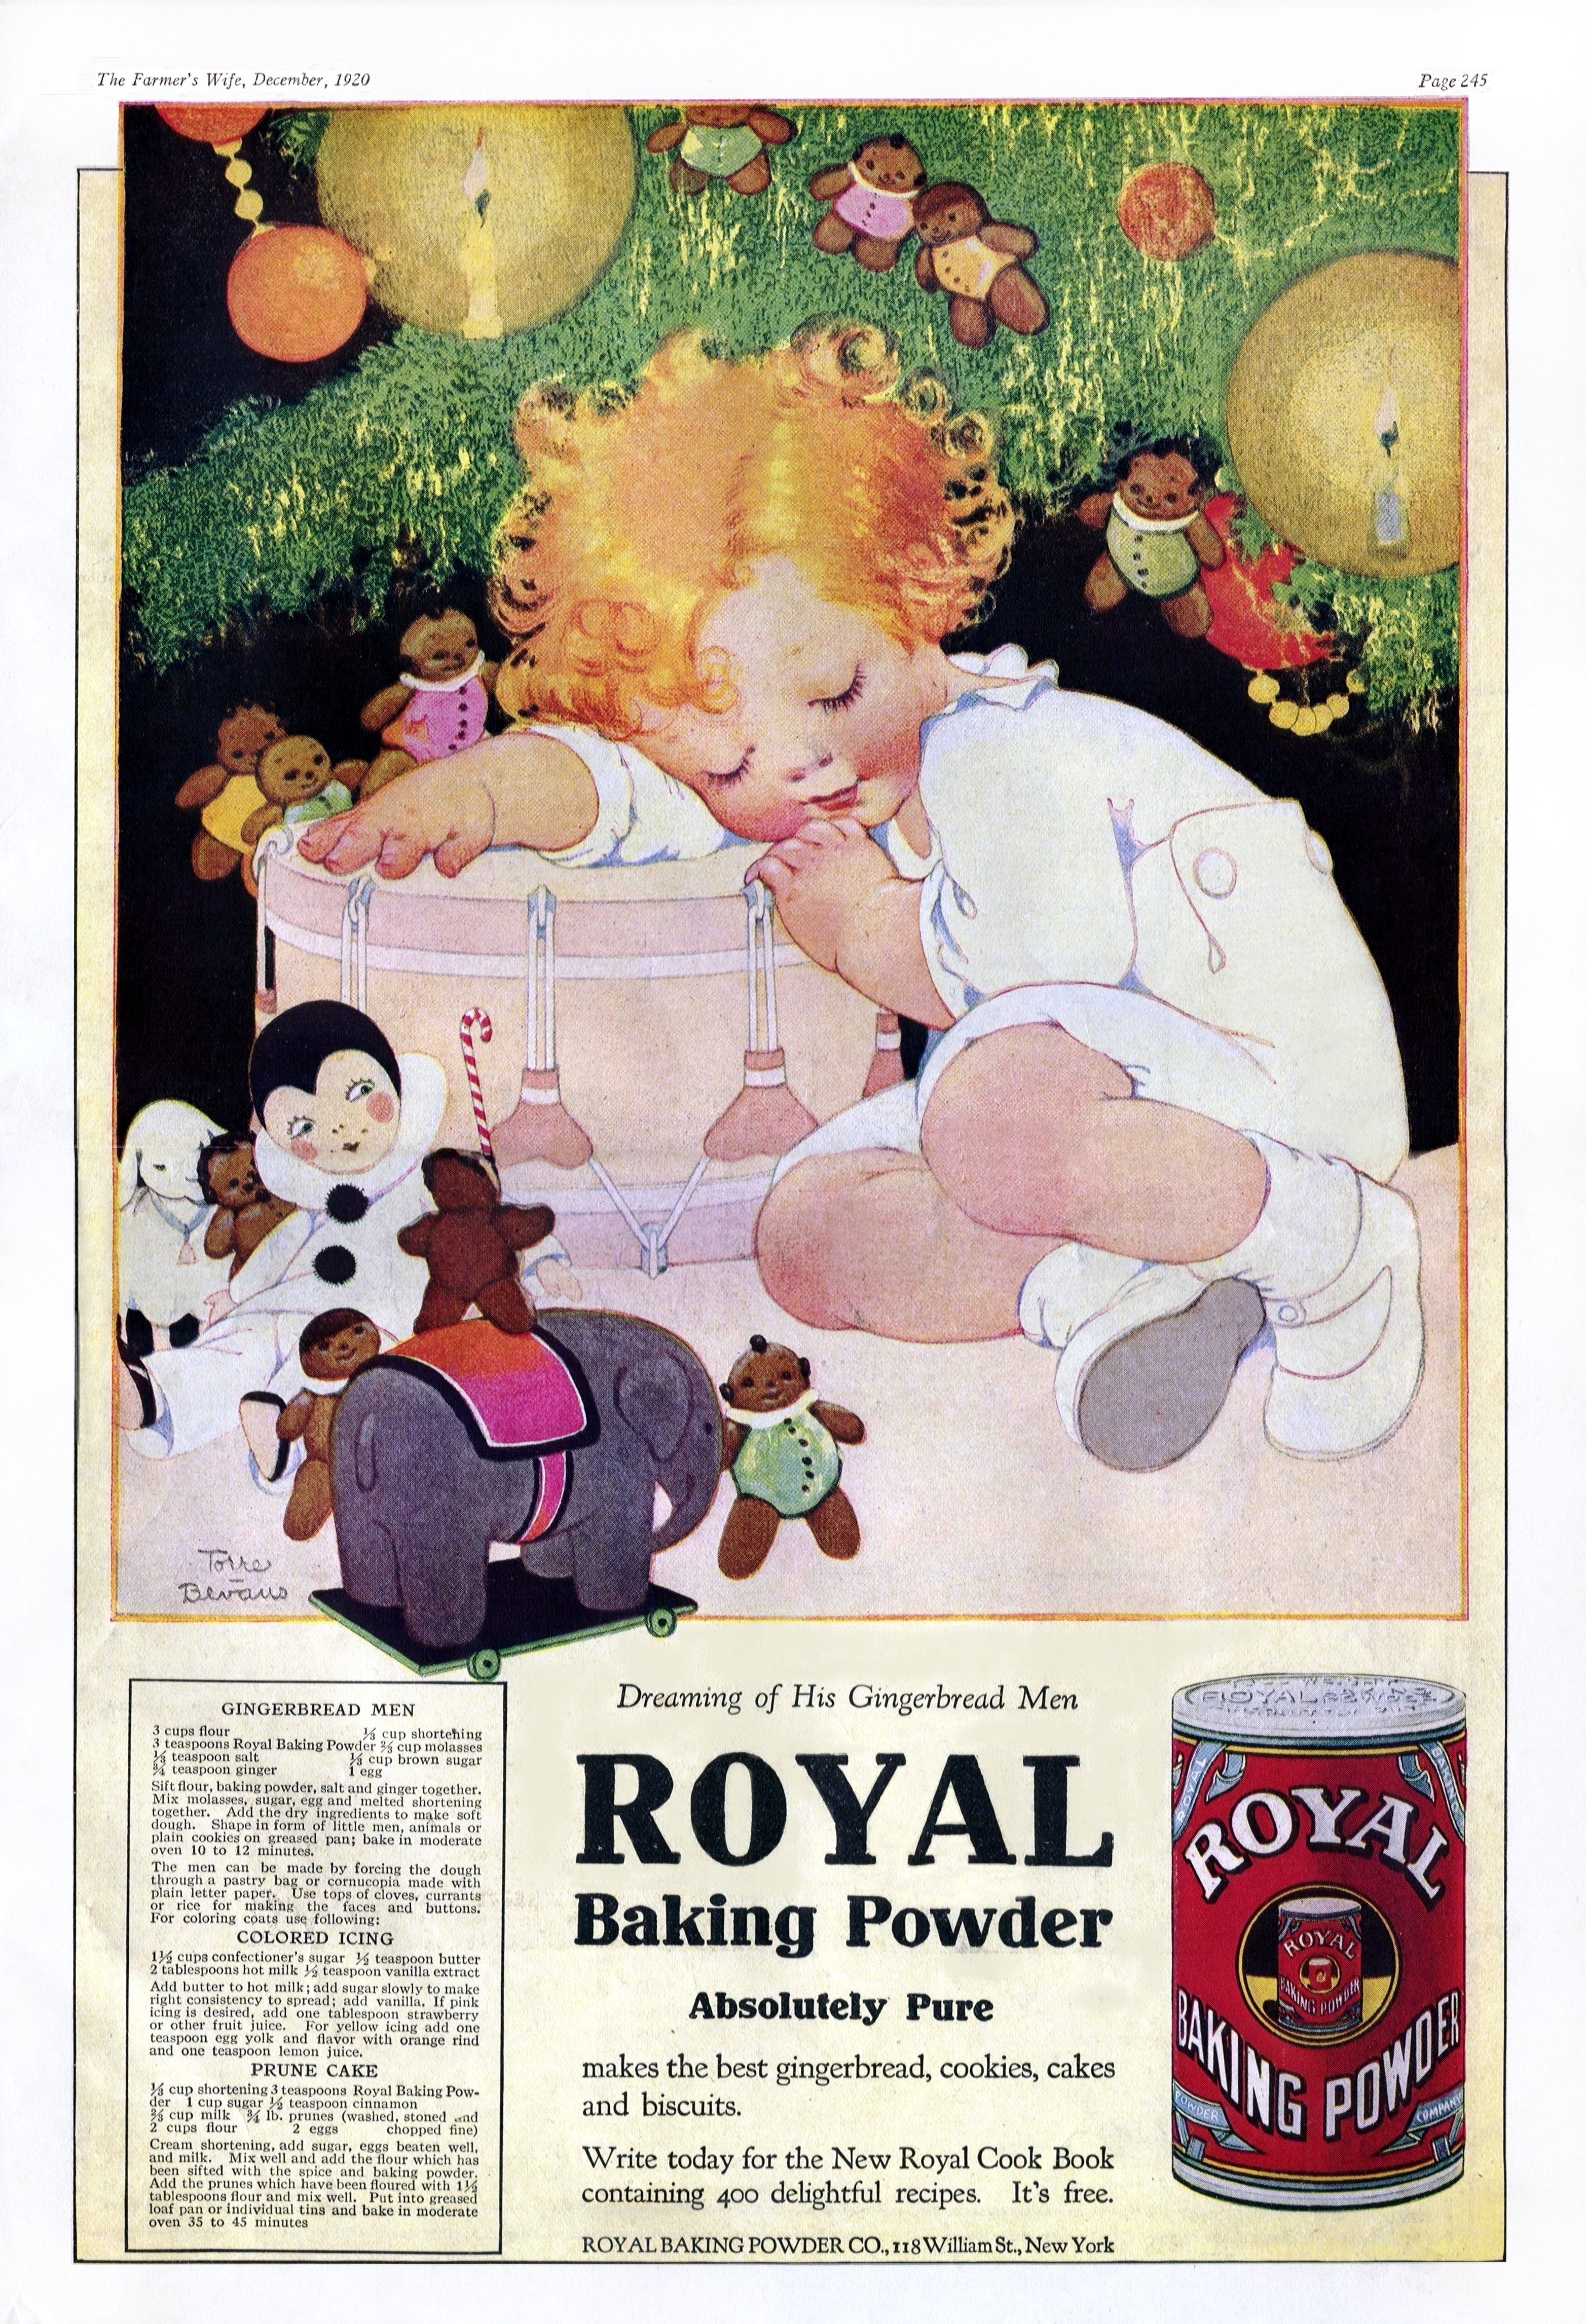 Royal Baking Powder - published in The Farmer's Wife - December 1920